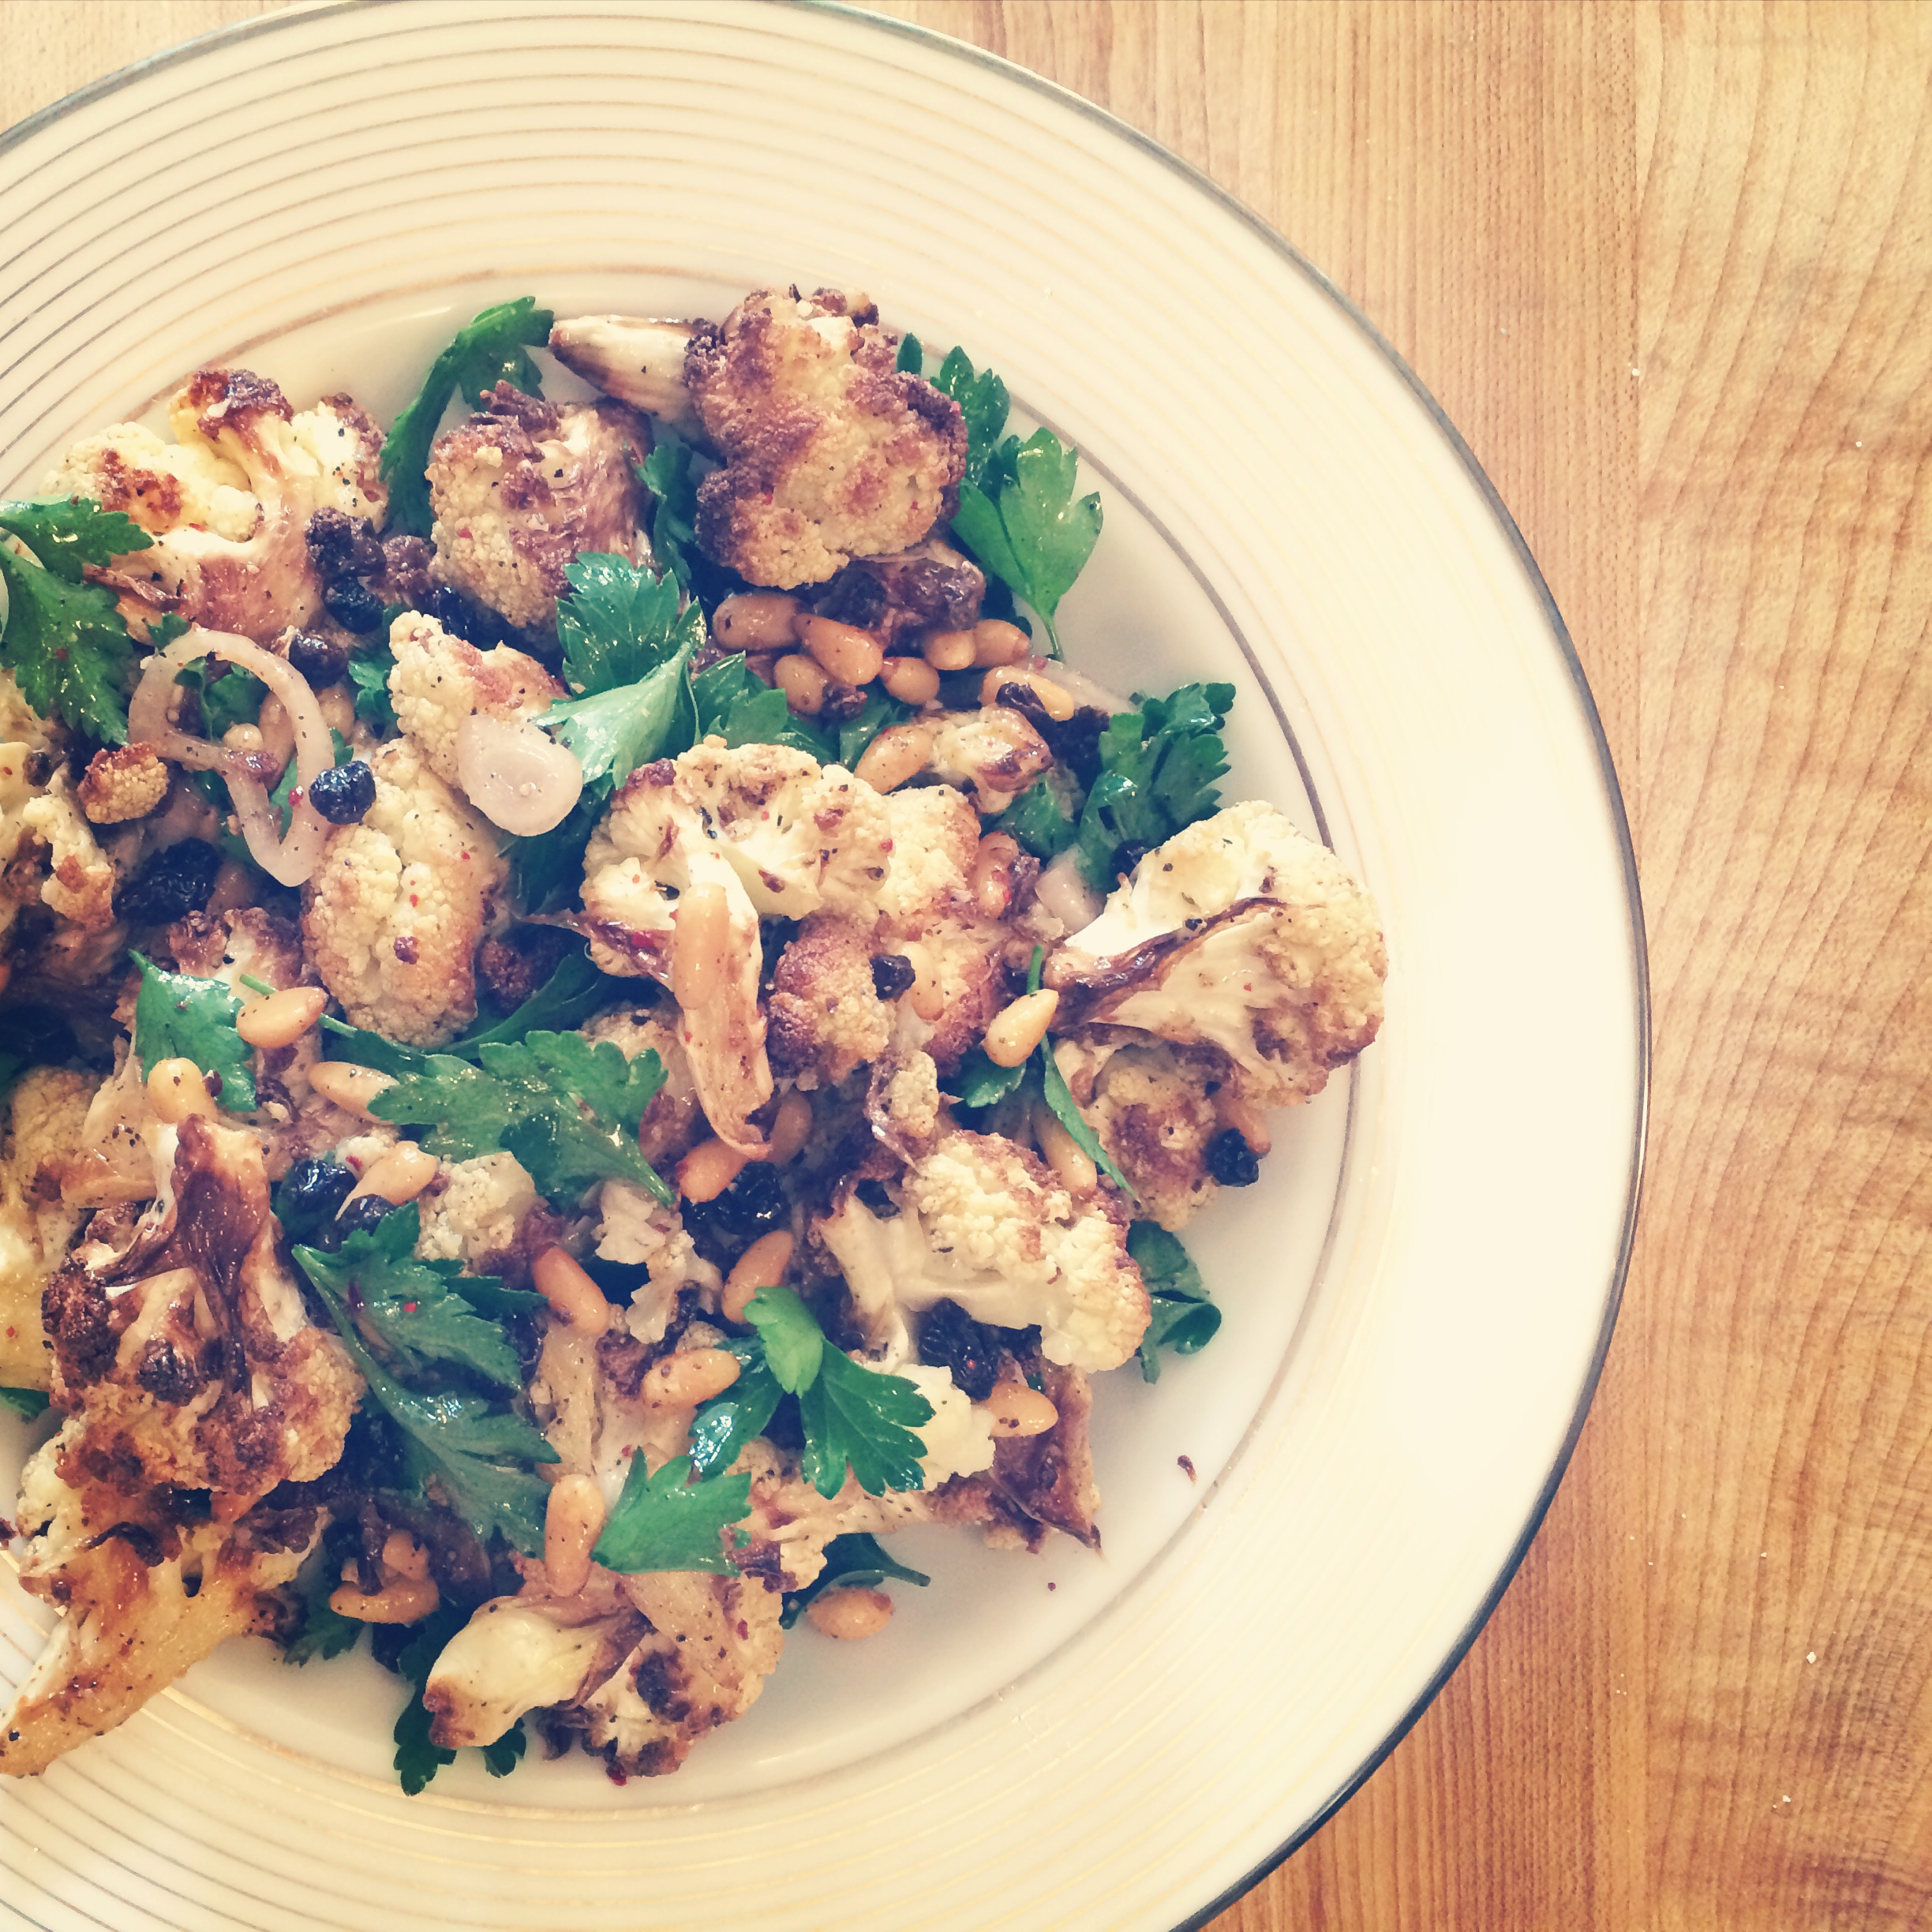 Roasted Cauliflower with Pine Nuts, Currants, and Parsley | Trillium Caterers, Belfast, Maine